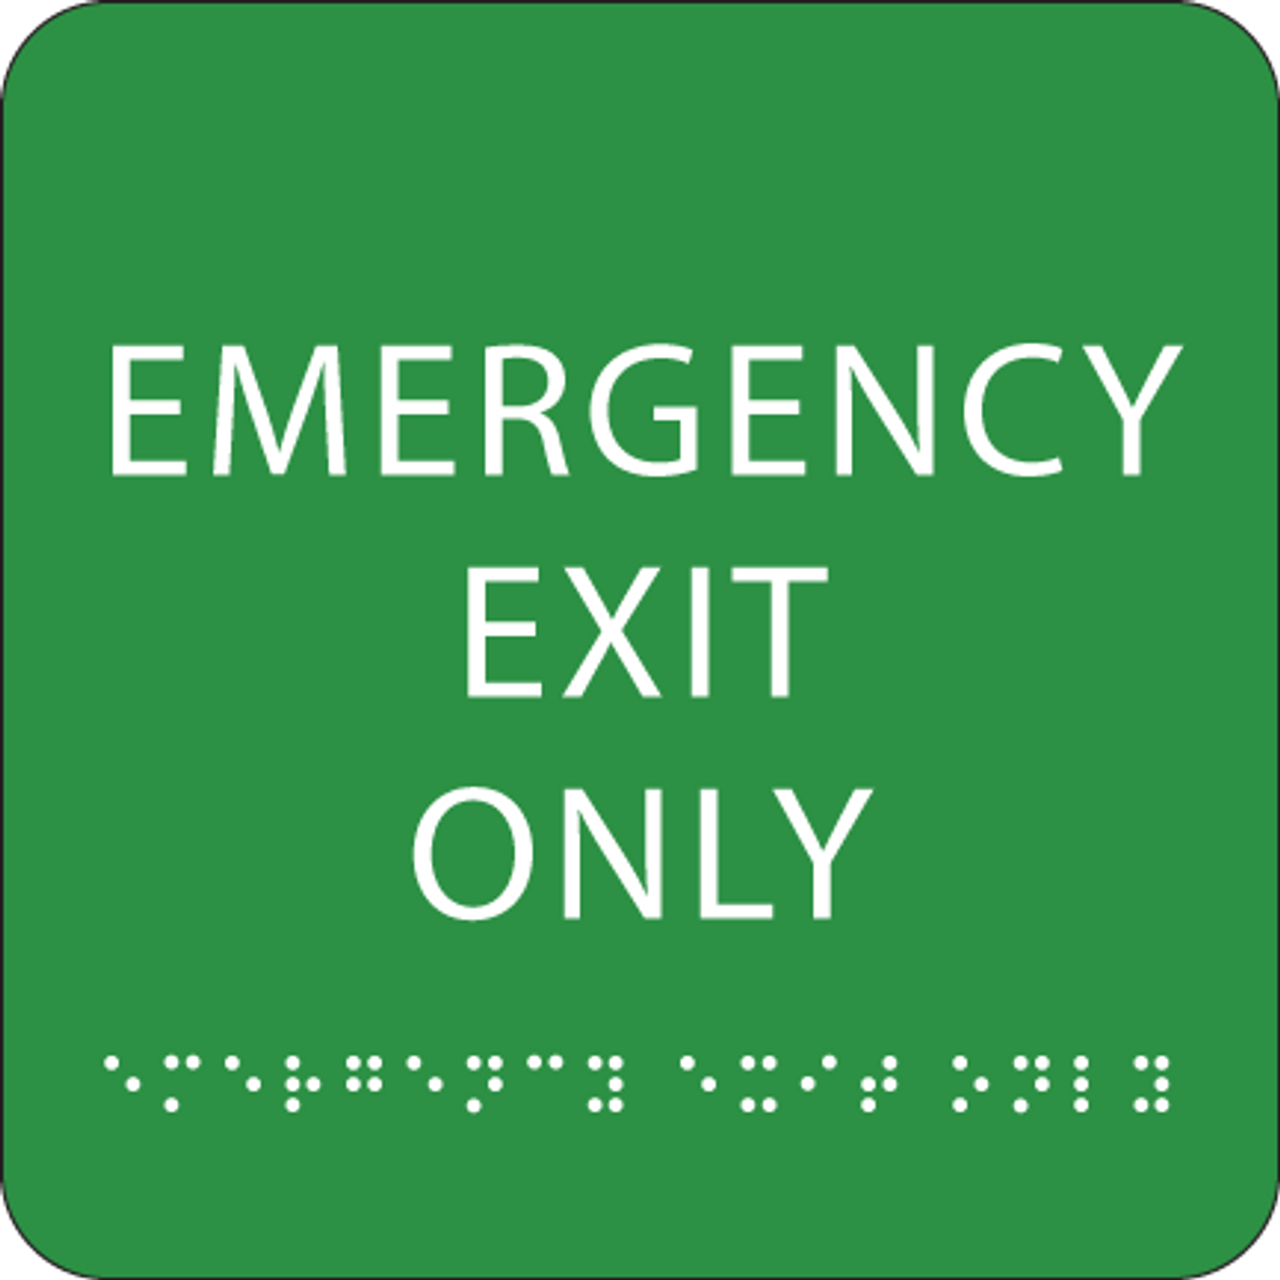 Green Emergency Exit Only ADA Sign